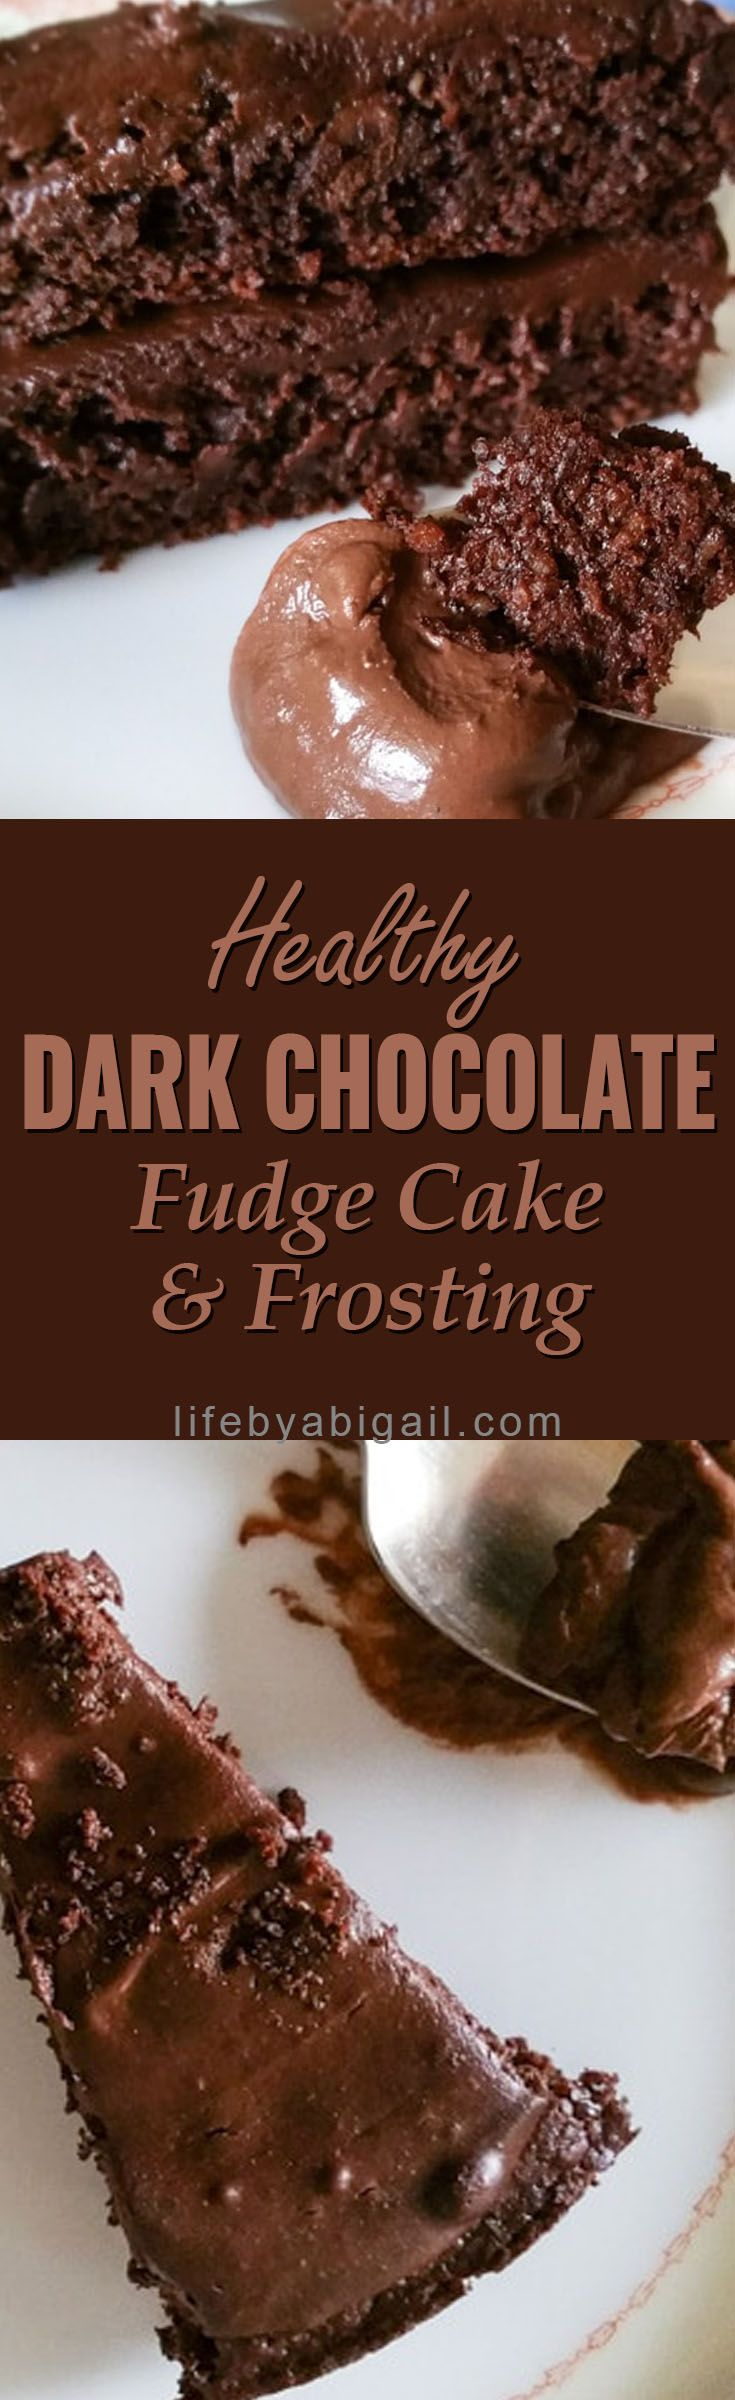 Healthy dark chocolate cake & fudge frosting! You'll never know that this treat is processed sugar free, wheat free, and dairy free! :-D This decadent cake and frosting recipe is a fabulous dessert option during holidays, birthday parties, and special occasions.